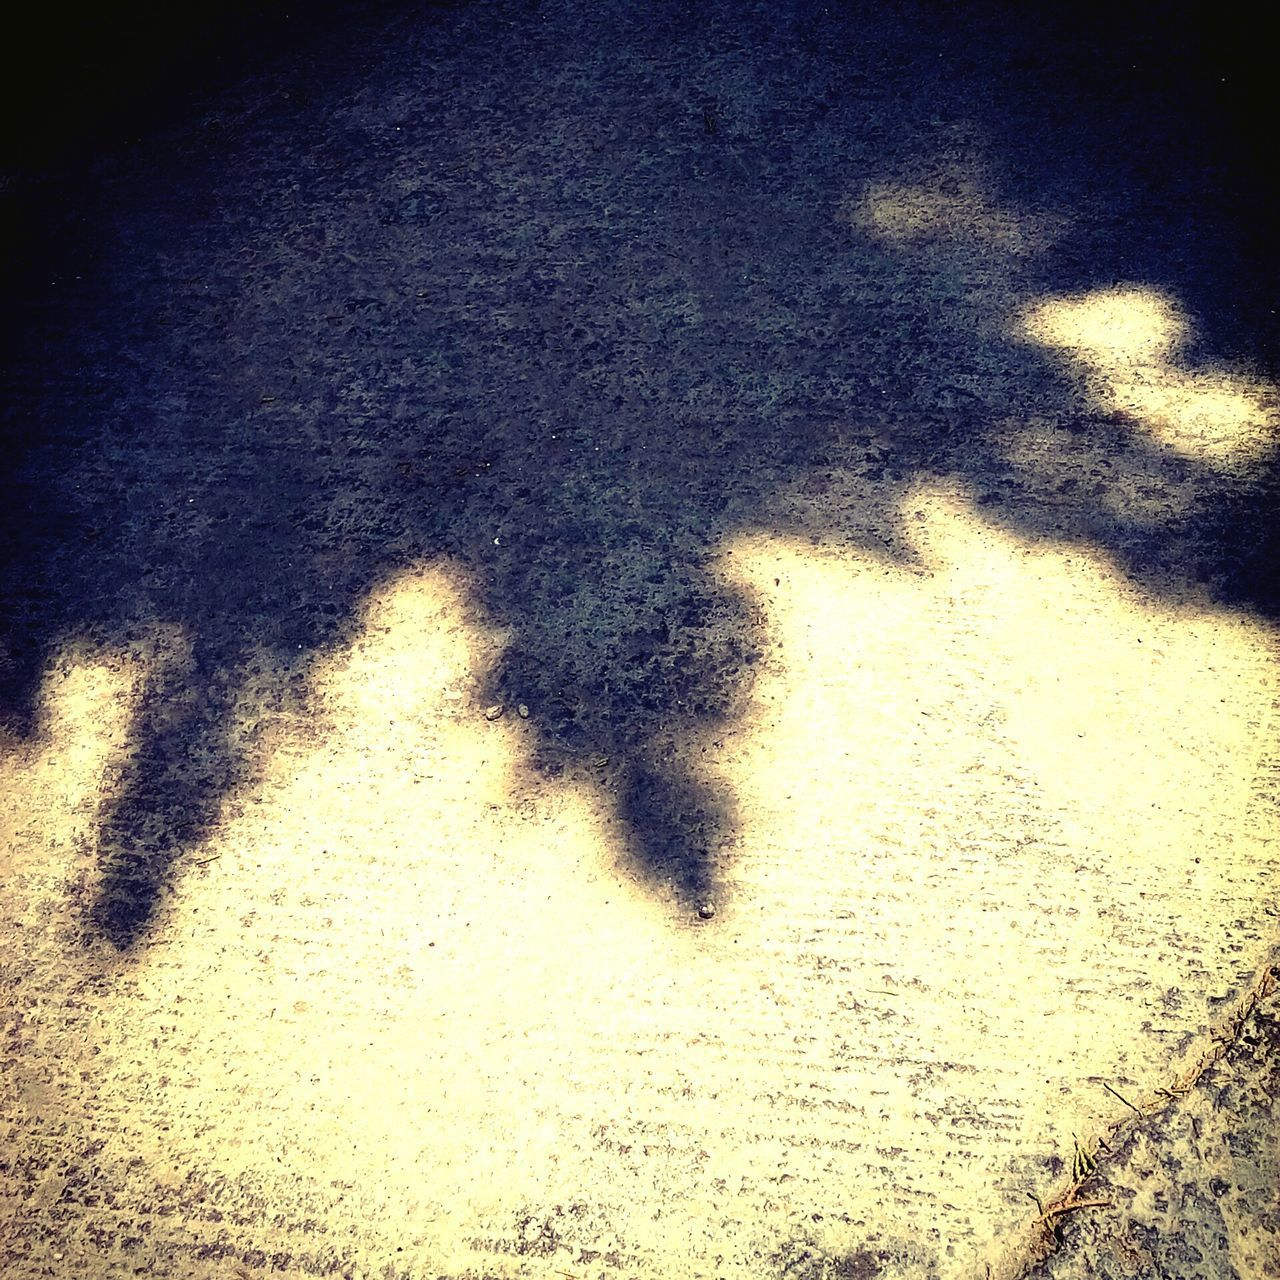 shadow, high angle view, focus on shadow, sunlight, day, outdoors, no people, water, road, puddle, nature, close-up, low section